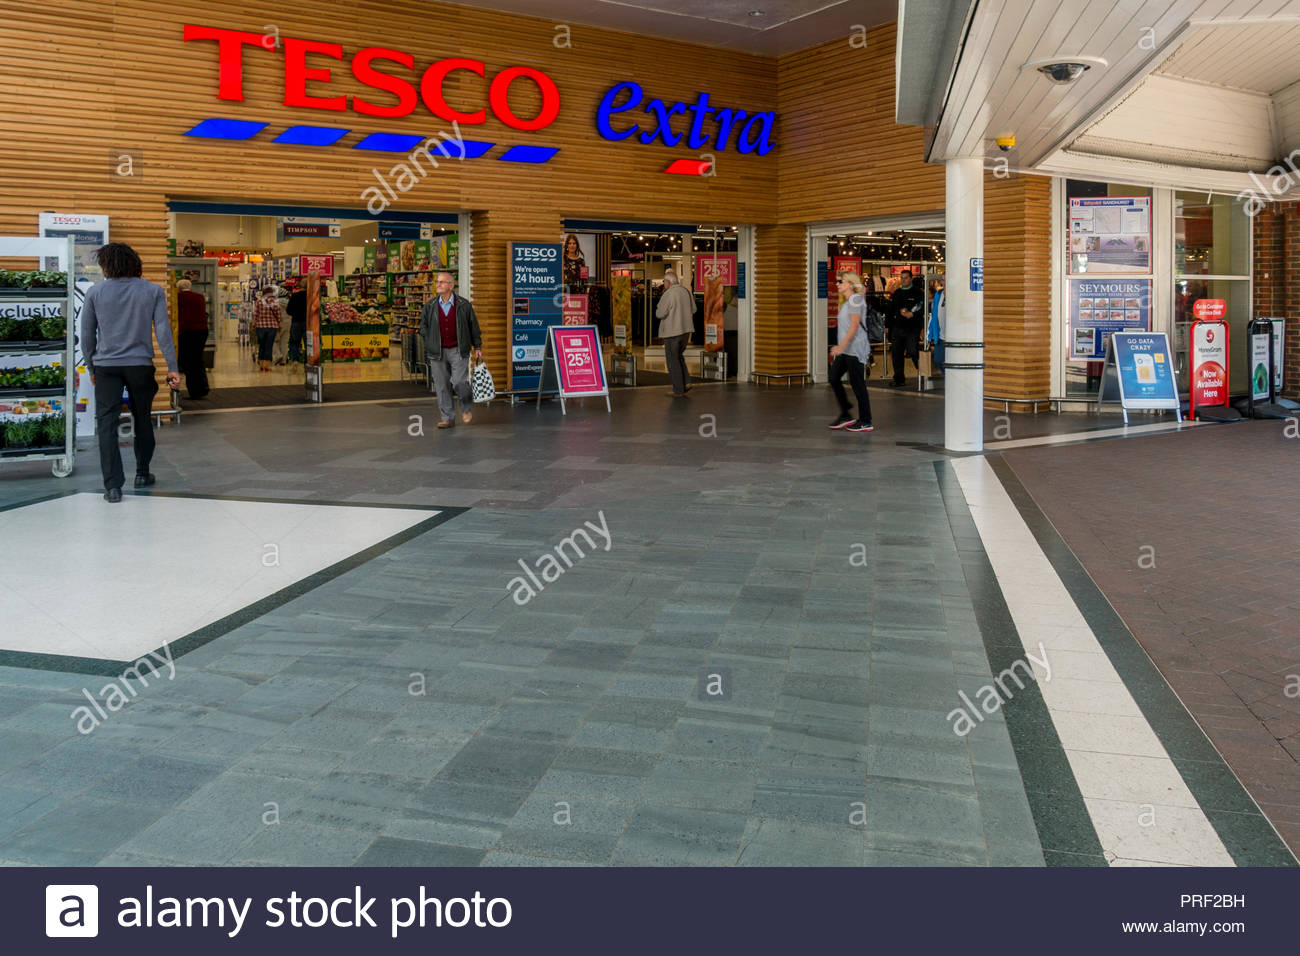 Exterior of a Tesco Extra Store, The Meadows, Camberley, Surrey, UK - Stock Image